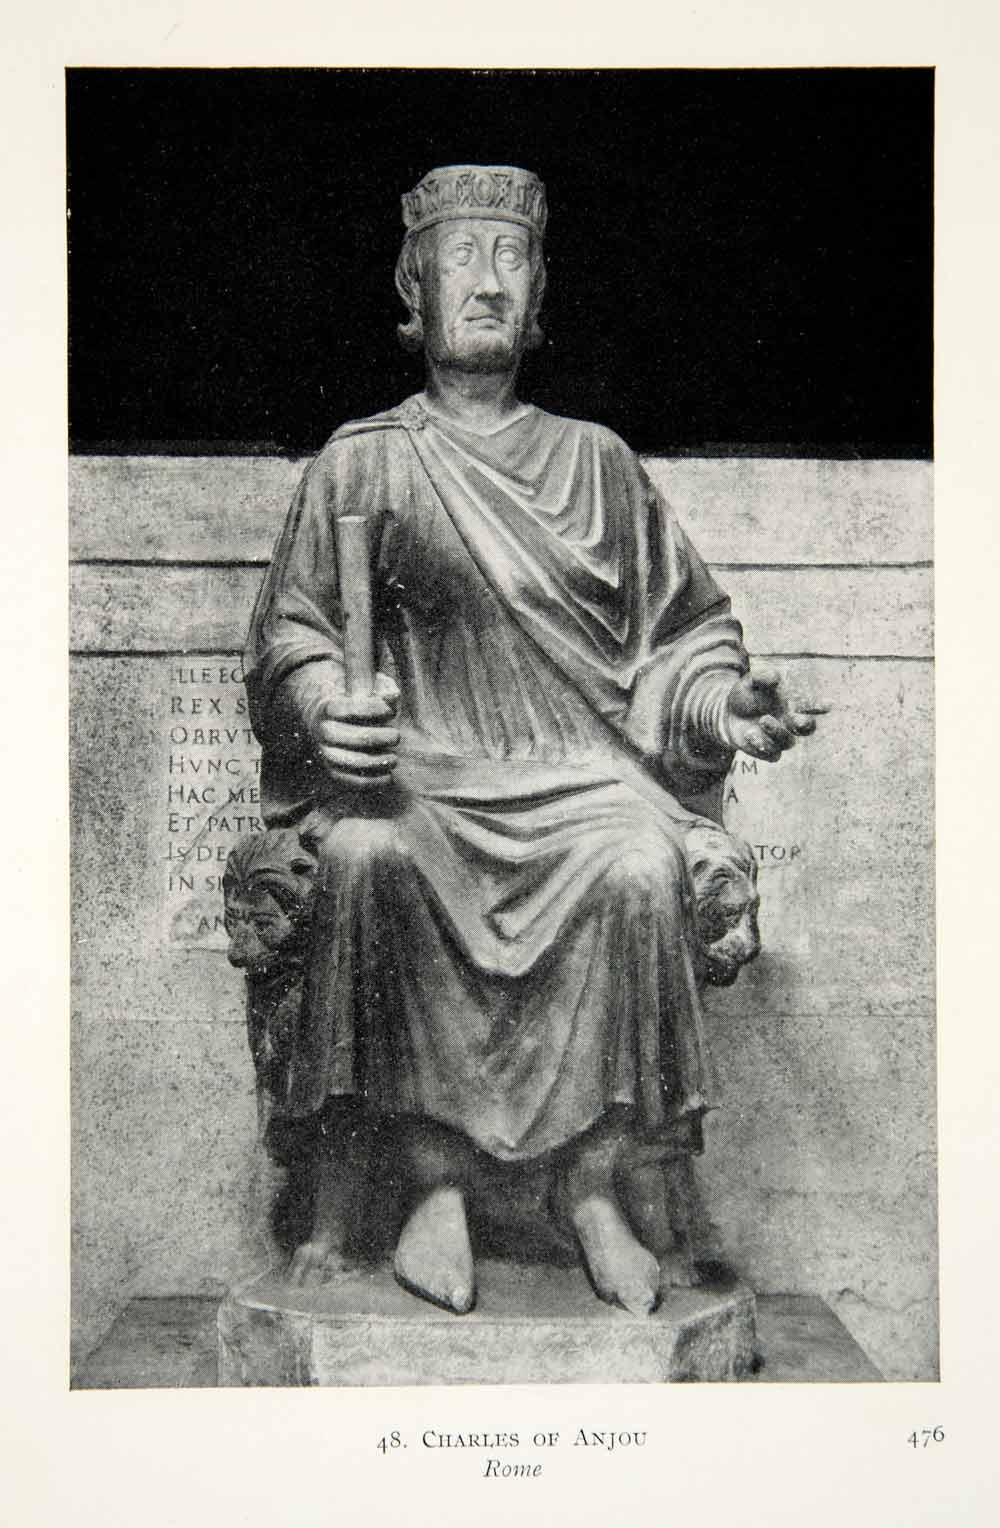 1915 Print Charles Anjou Rome Italy Statue Monument King Royalty Historic XECA7